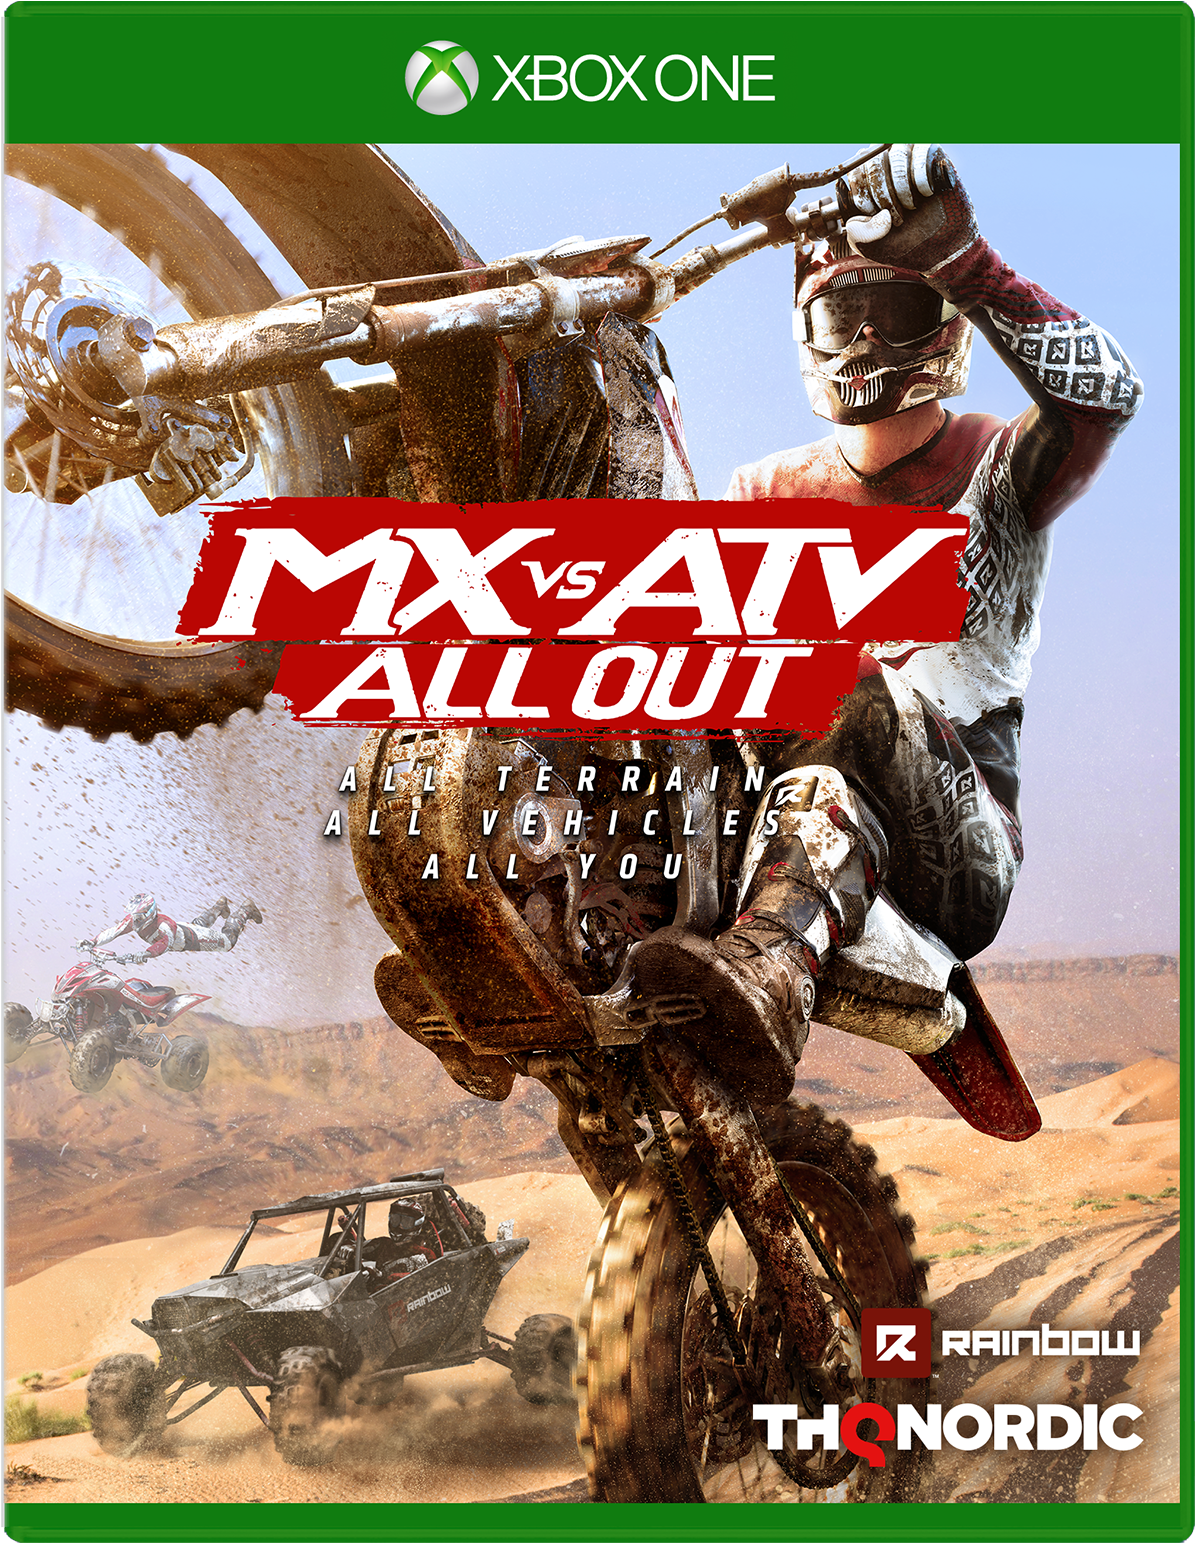 Nordic MX Vs ATV: All Out Xbox One